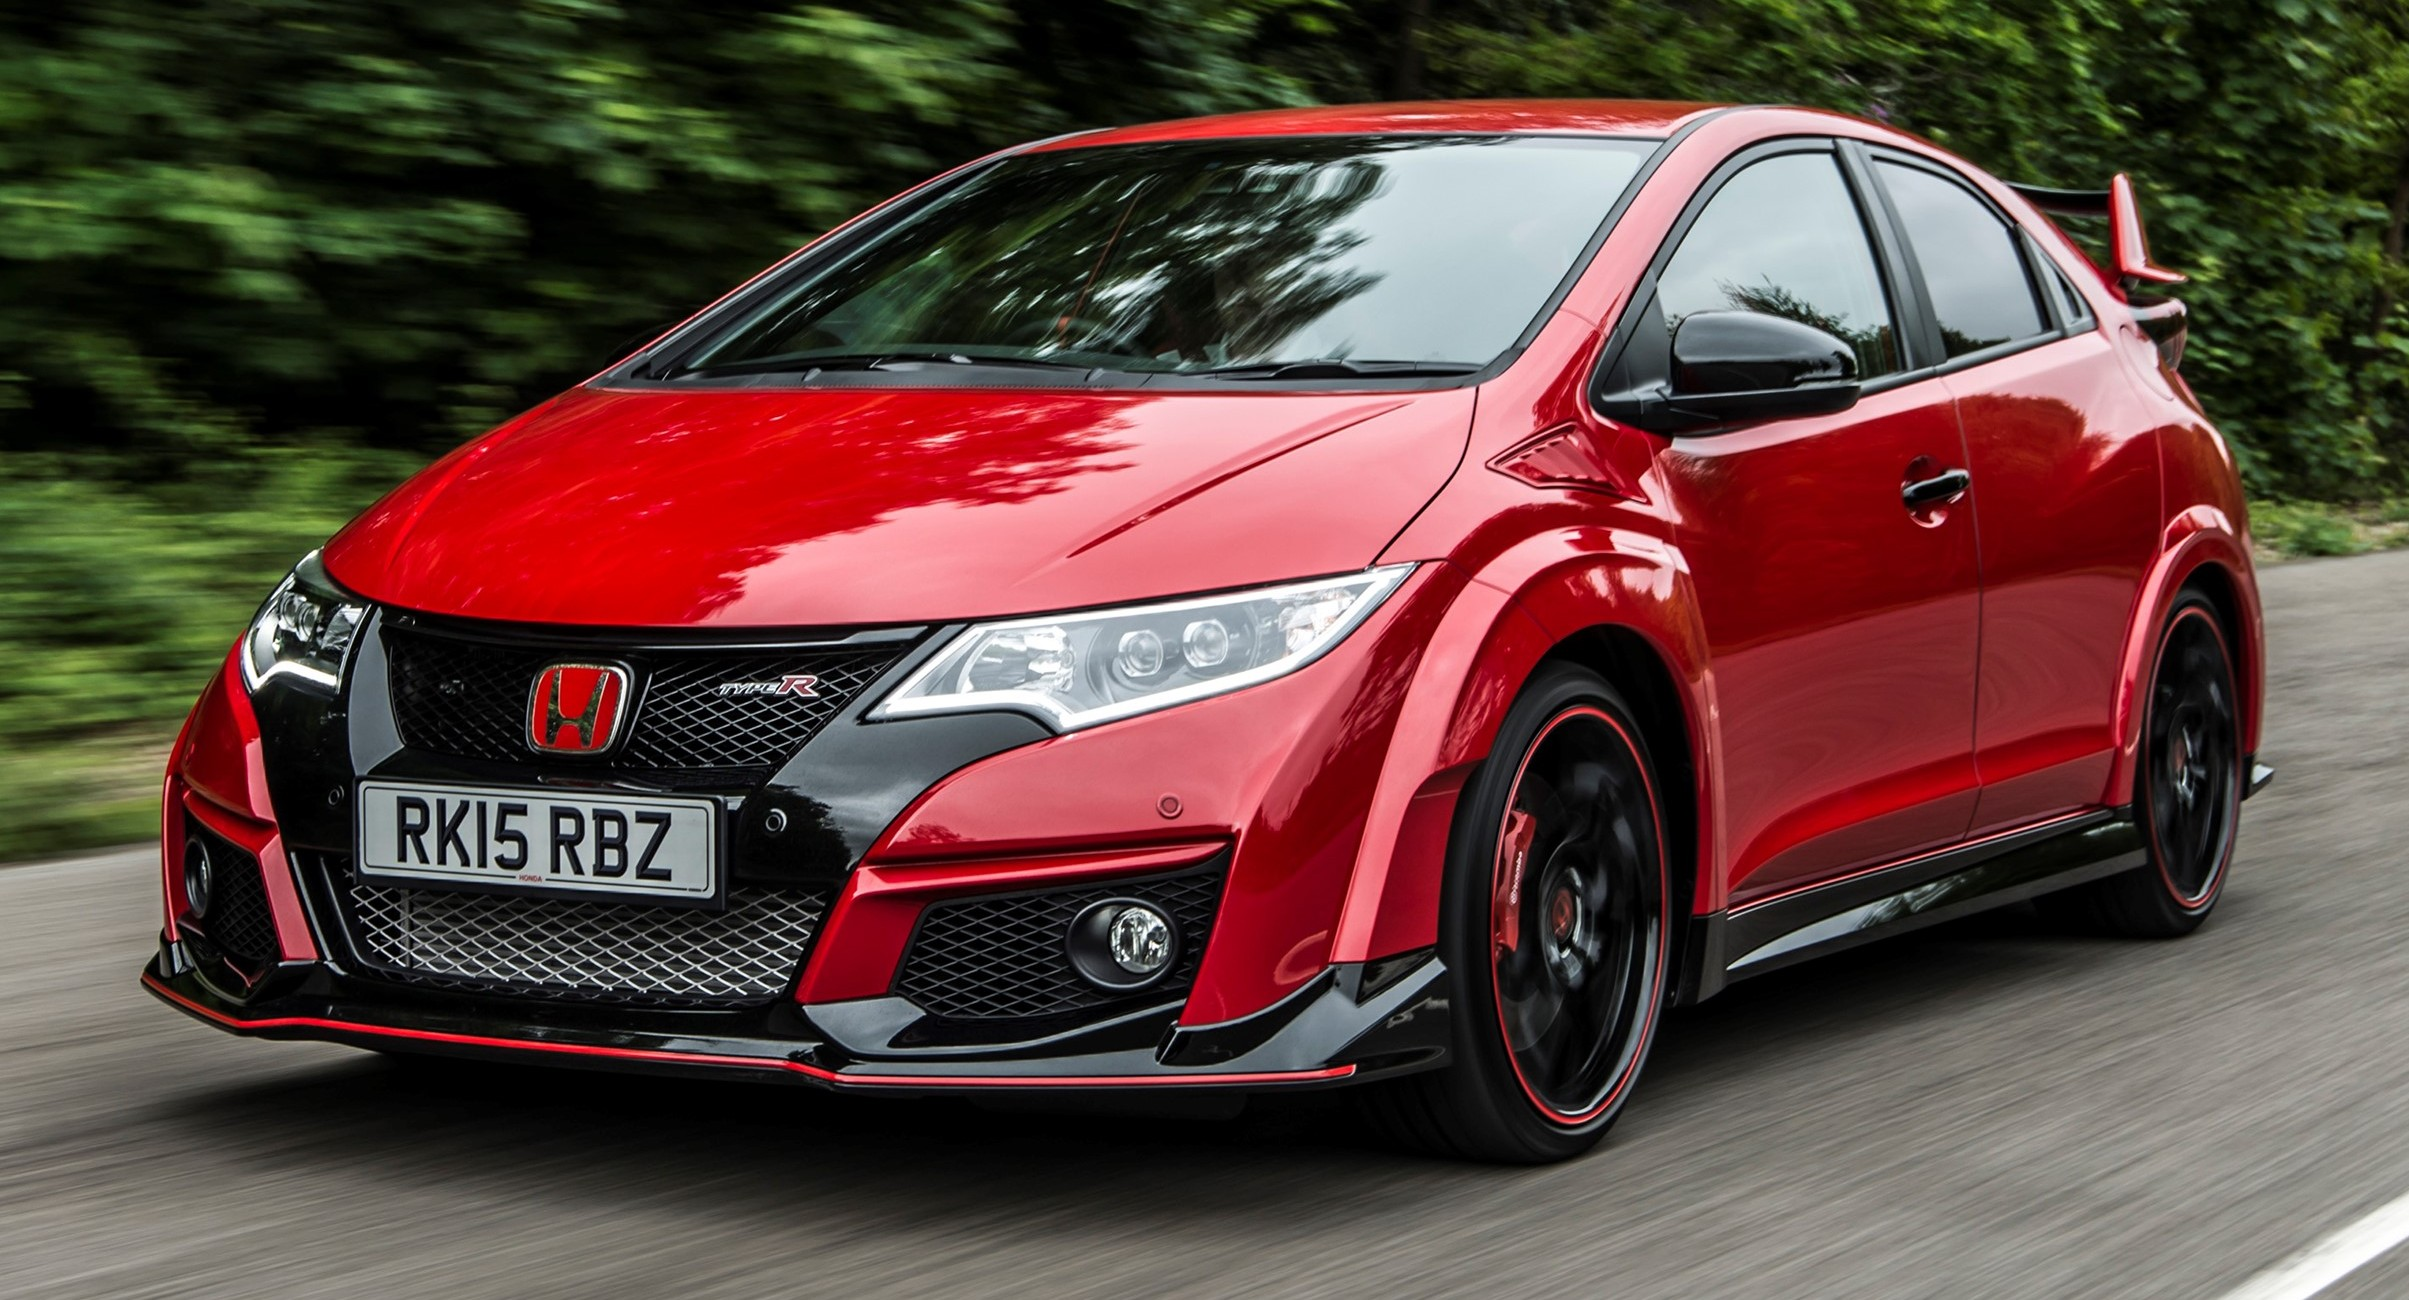 Faster lighter honda civic type r variant possible for Honda civic 2015 for sale